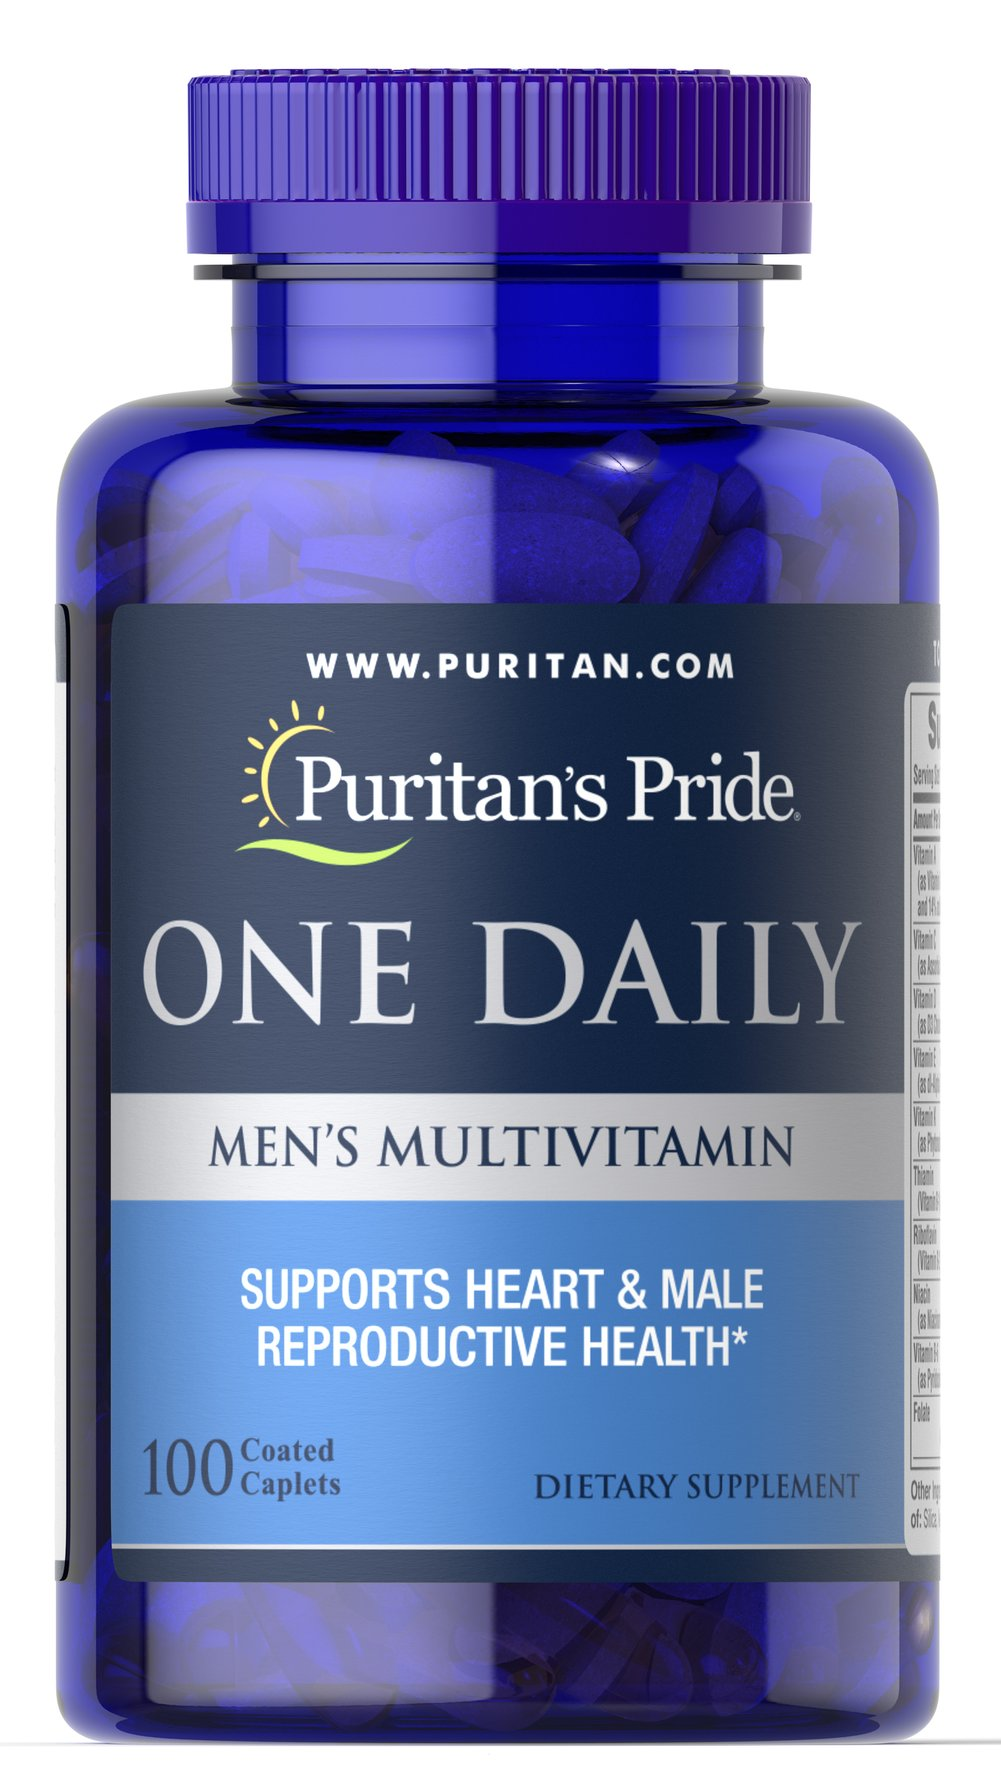 One Daily Men's Multivitamin Thumbnail Alternate Bottle View